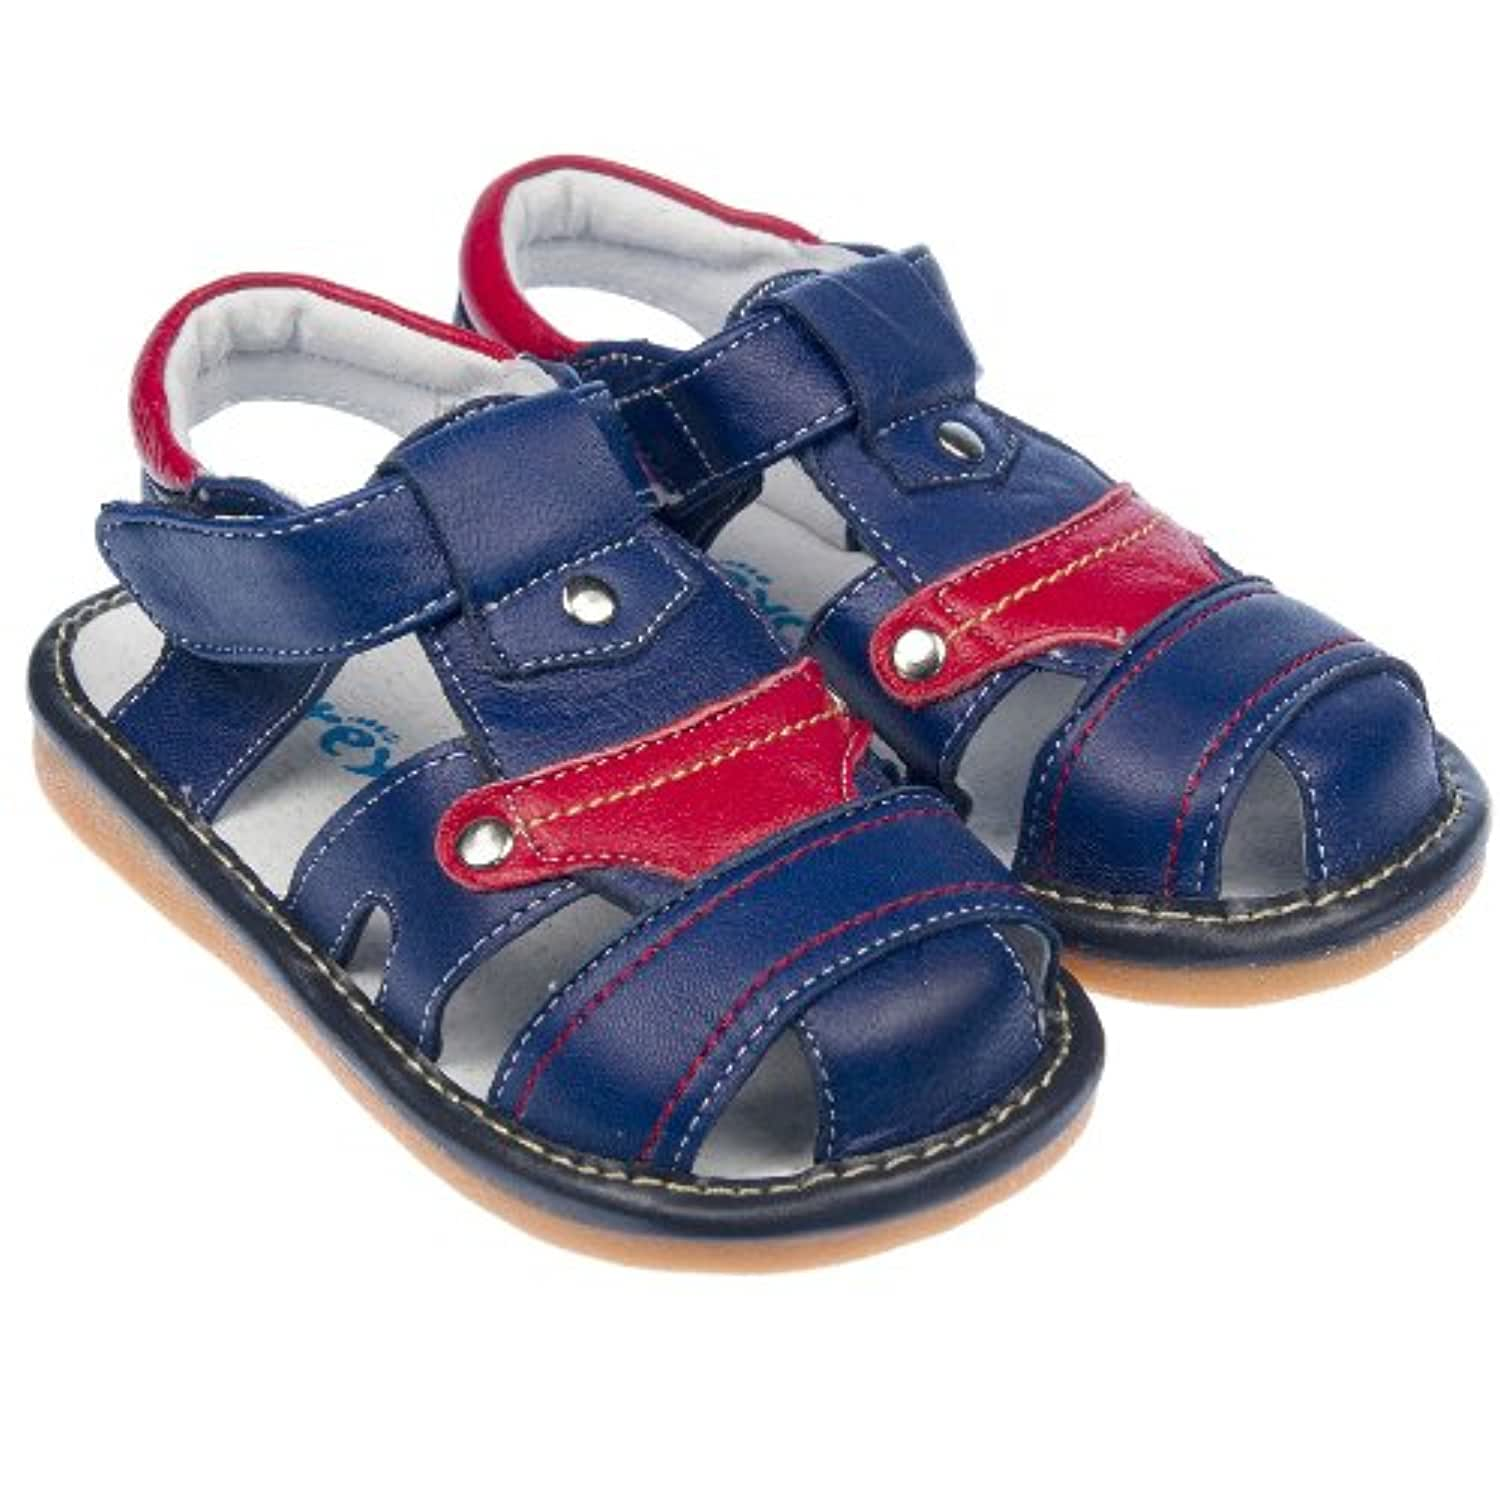 Freycoo - Boys Toddler Childrens Kids Real Leather Squeaky Shoes Sandals - Navy Blue & Red